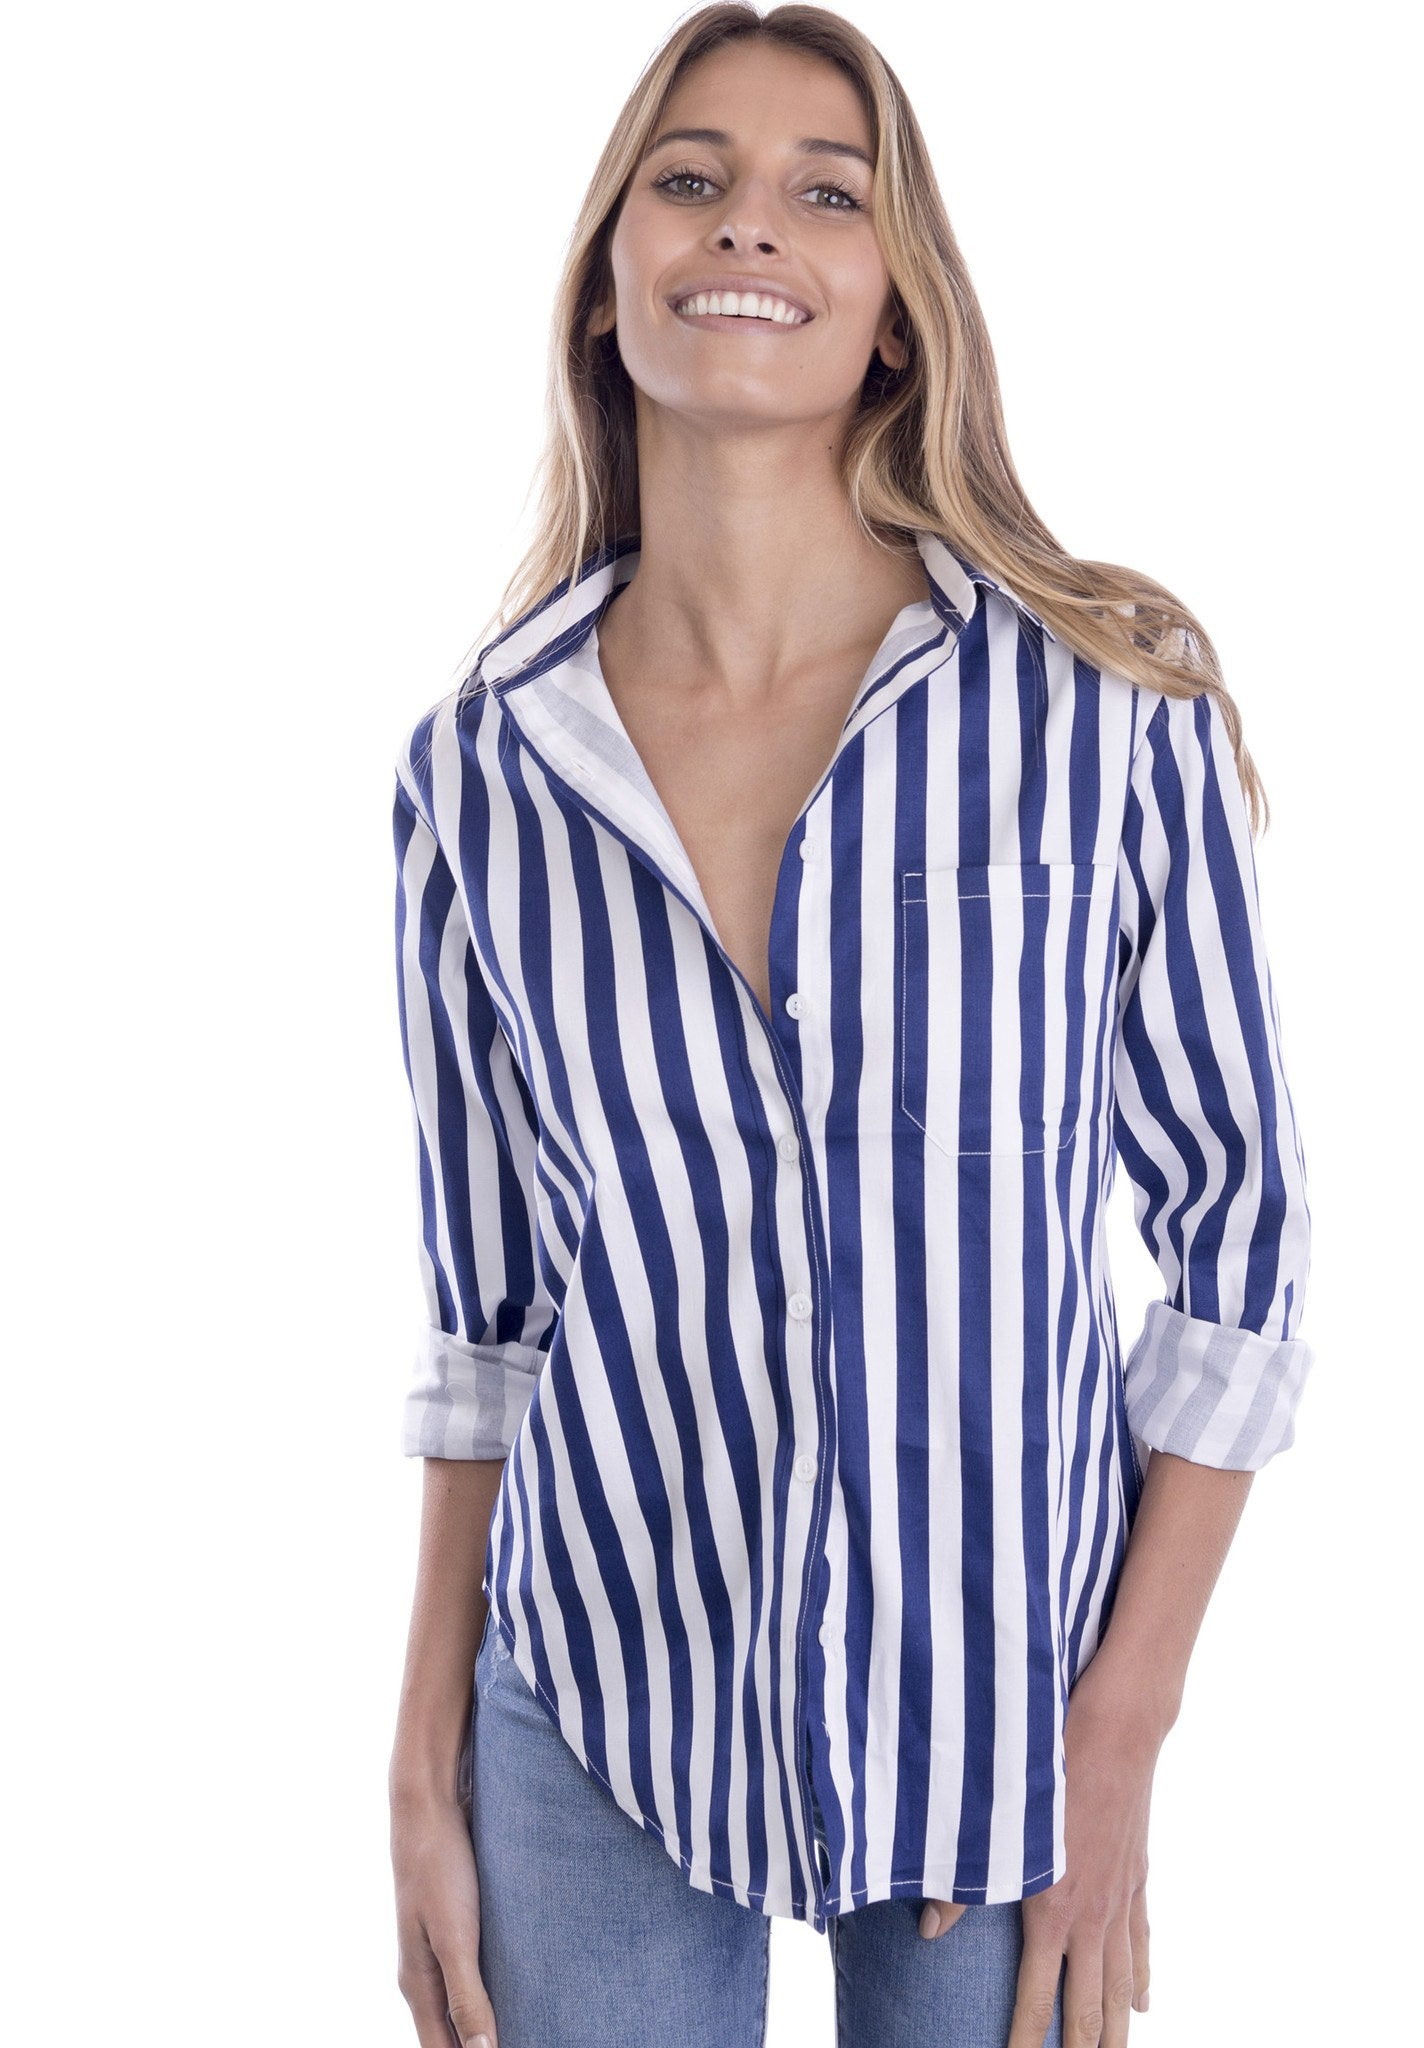 Regata Blue and White Striped Boyfriend Shirt